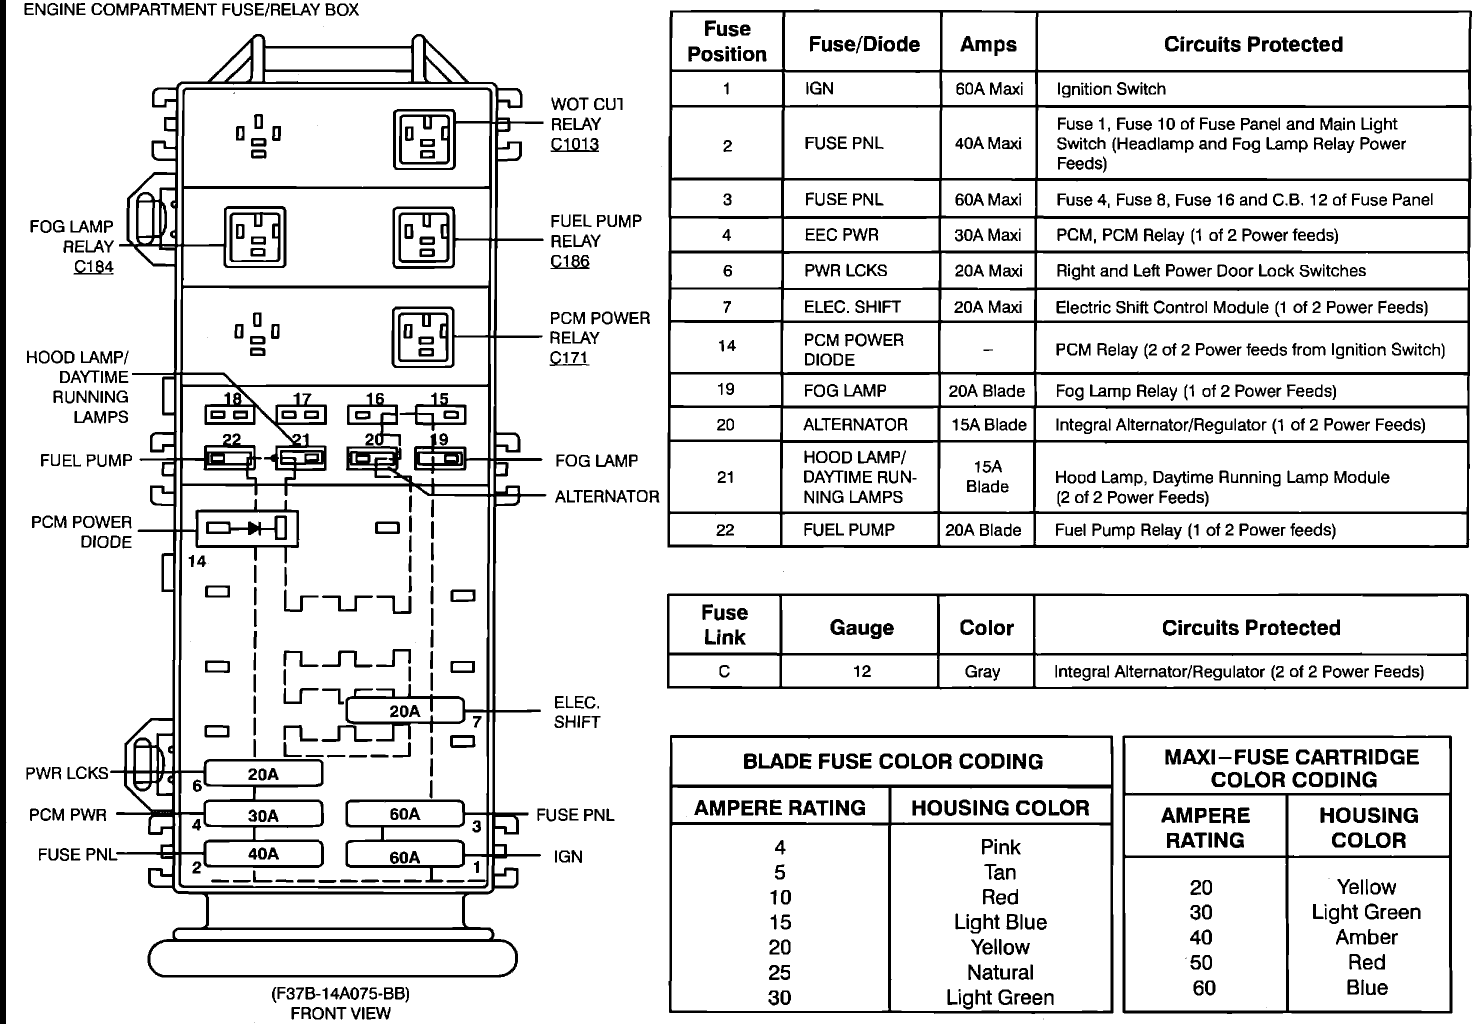 97 Ford Ranger Fuse Box Diagram Schematics 1997 Grand Marquis Image Details Amps